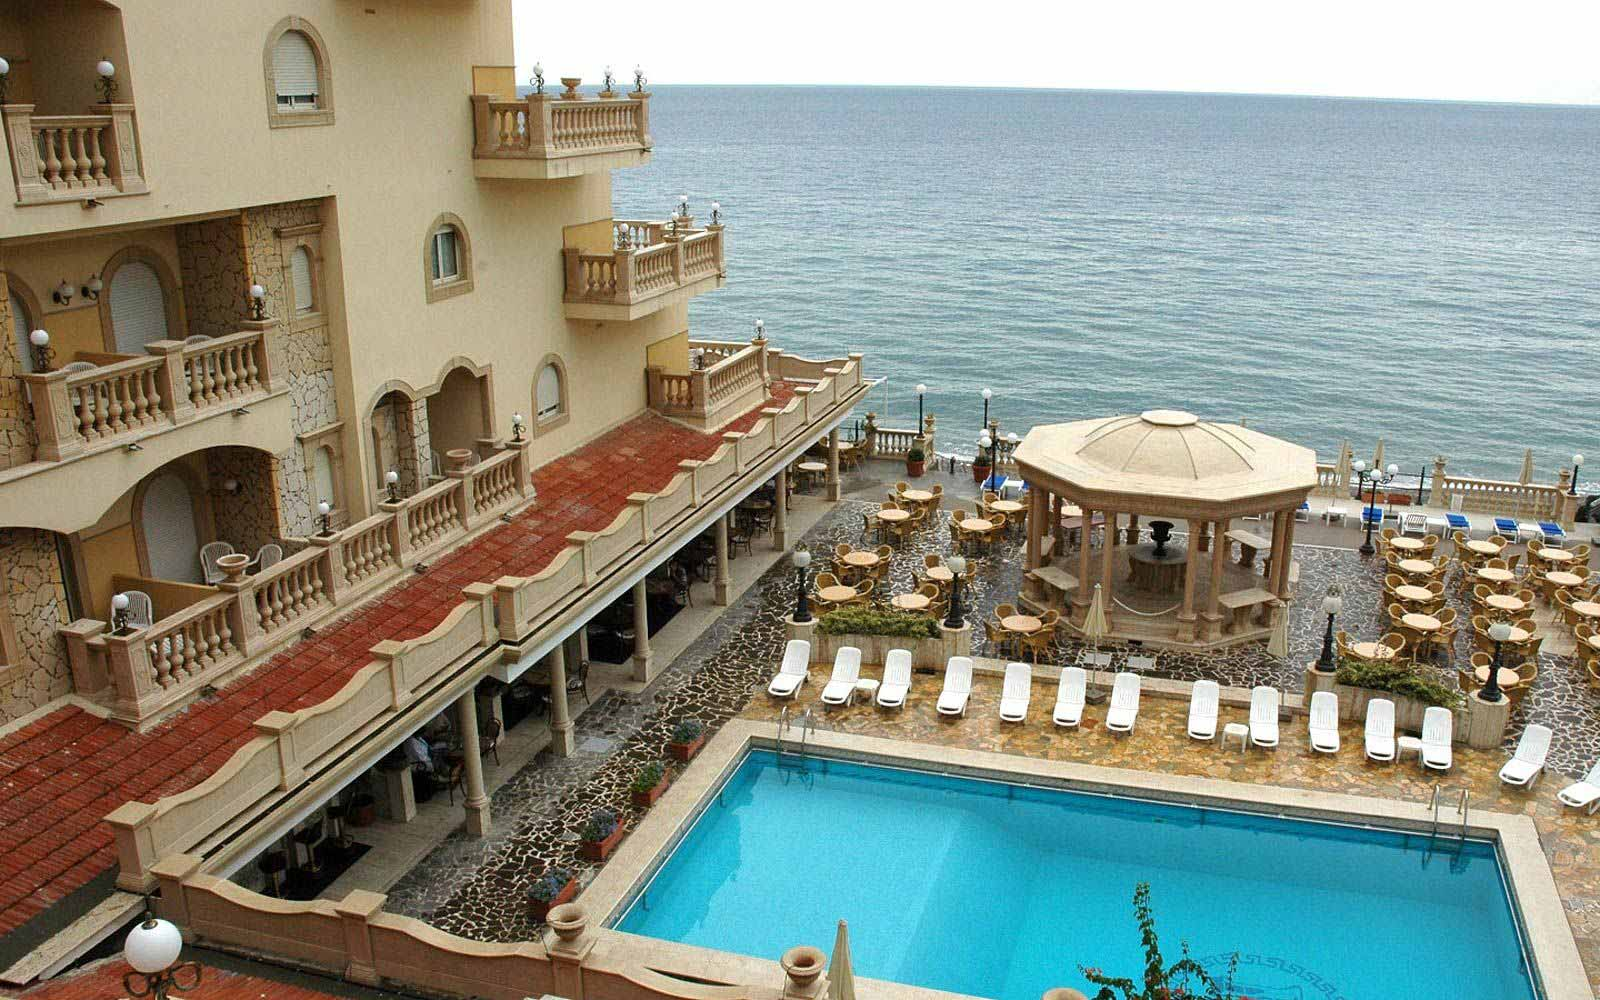 Panormaic view of swimming pool at Hellenia Yachting